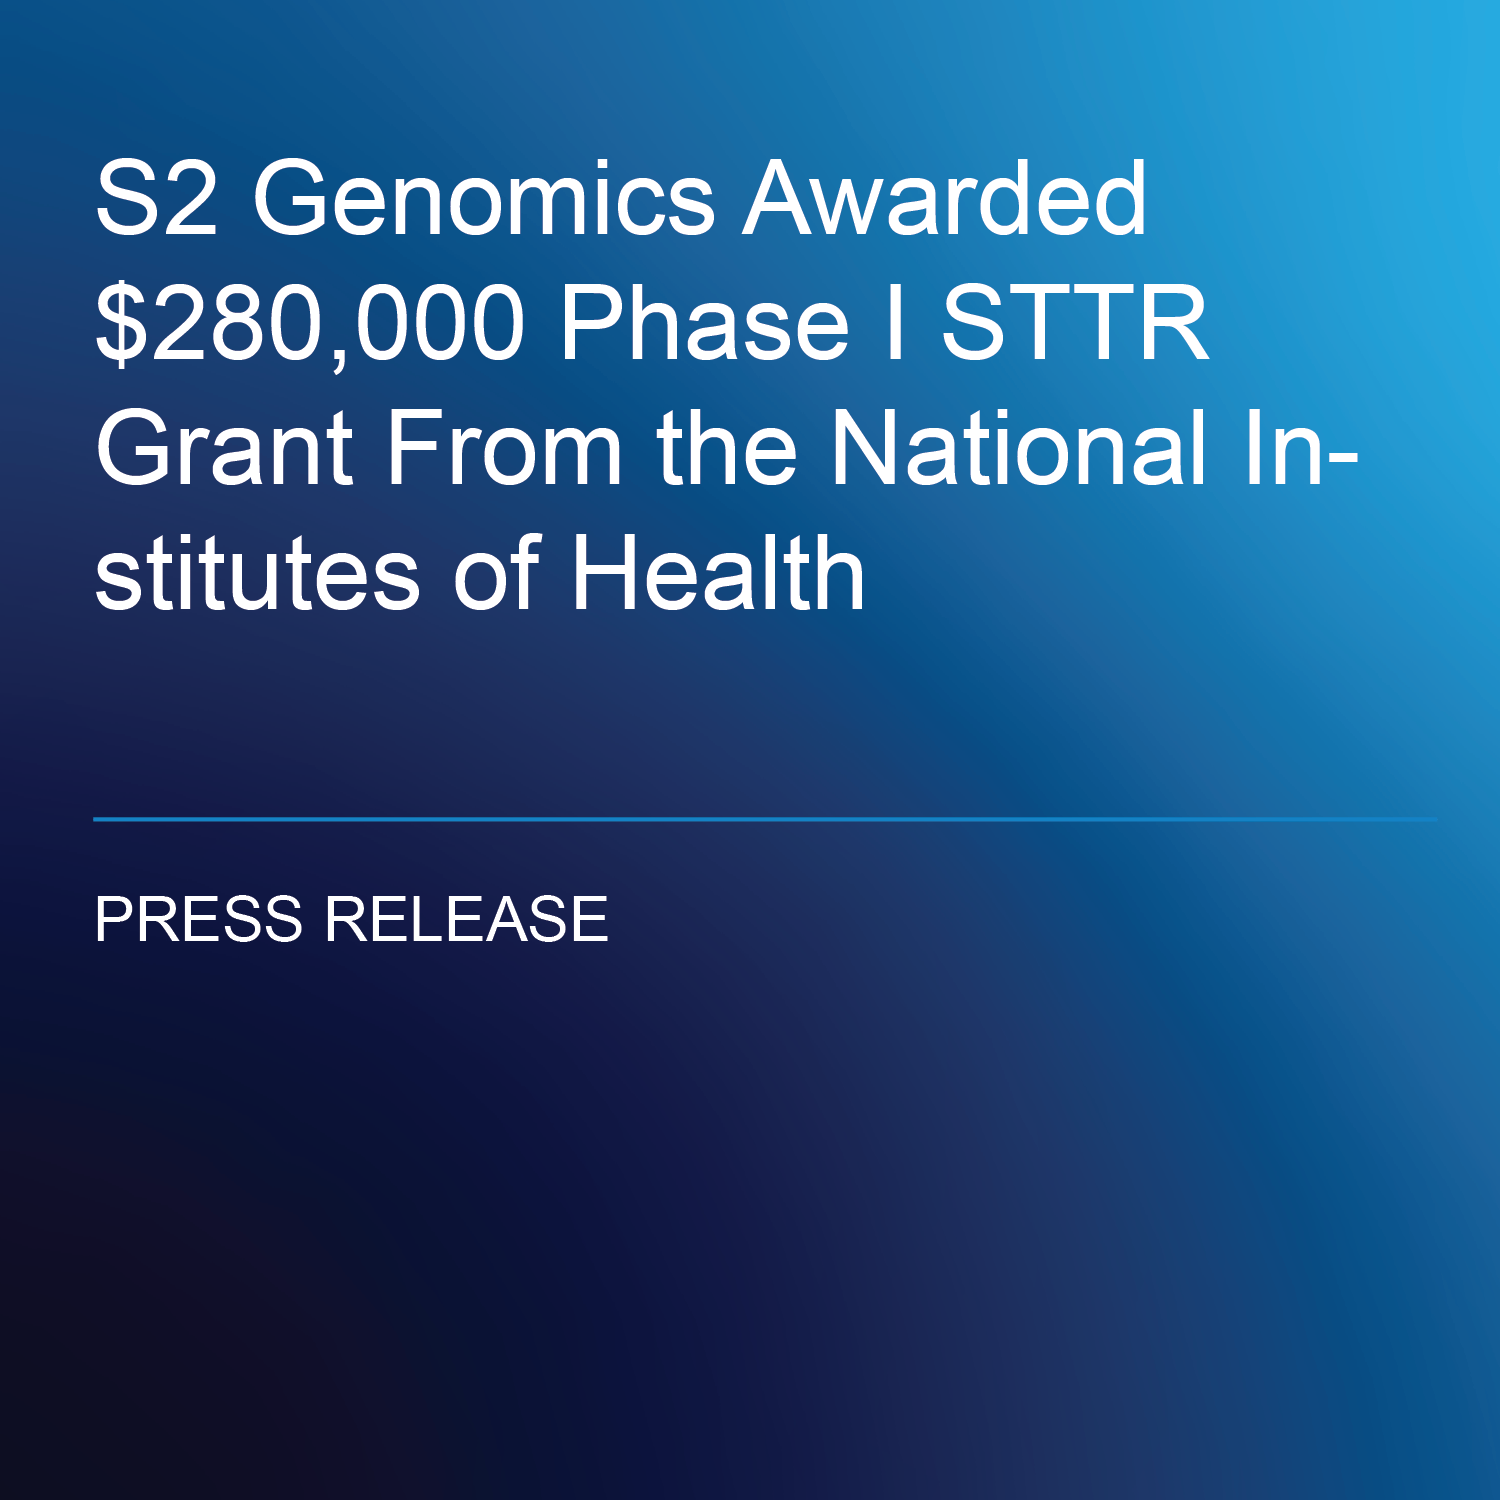 S2 Genomics Awarded $280,000 Phase I STTR Grant From the National Institutes of Health